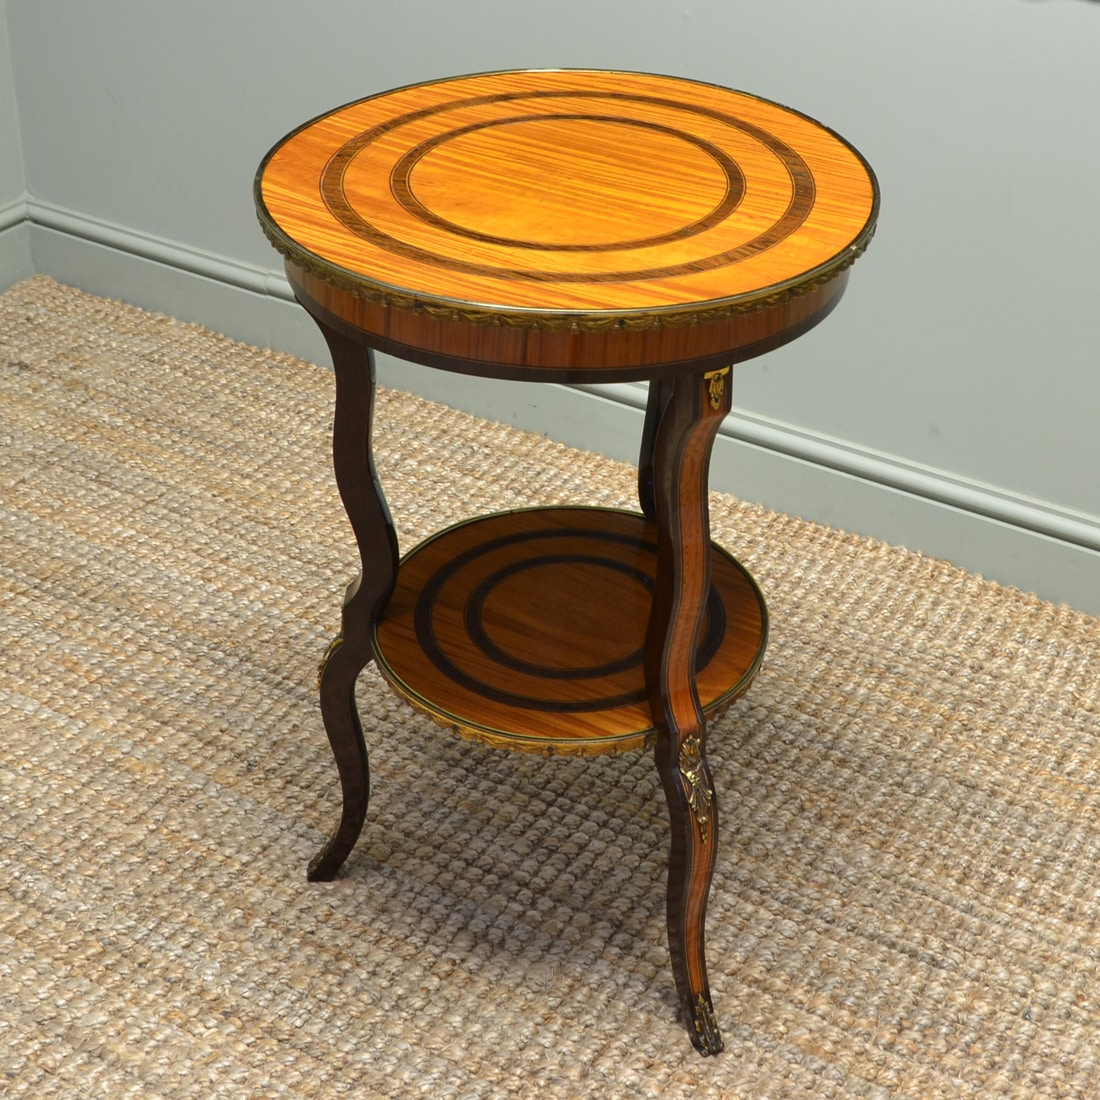 Edwardian Antique Satinwood Occasional Table with Decorative Brass Ormolu Mounts.